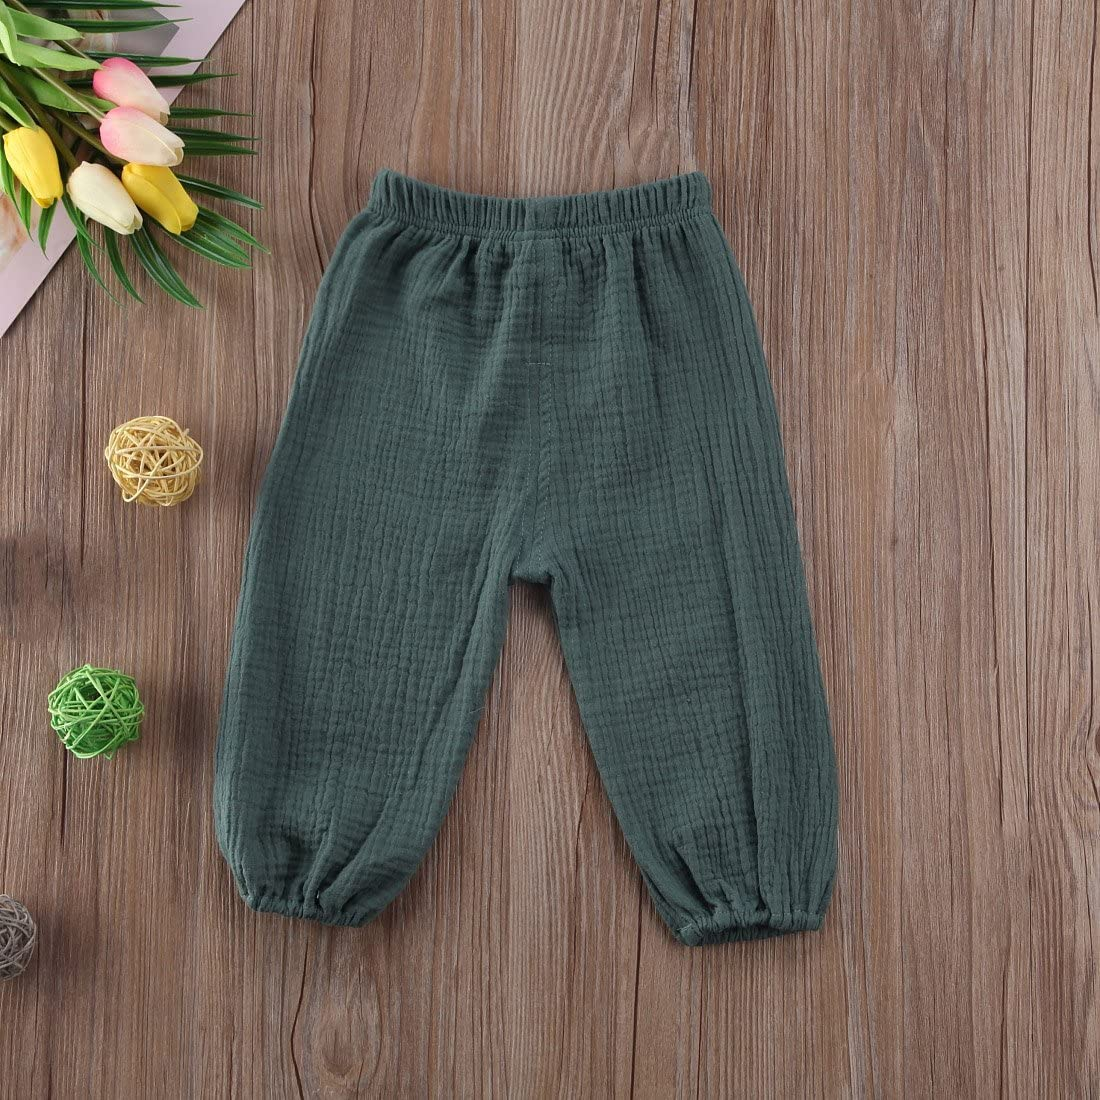 CHRONSTYLE Baby Cotton Linen Trousers Toddler Baby Boy Girl Casual Elastic Harem Trousers Summer Bloomers Clothing